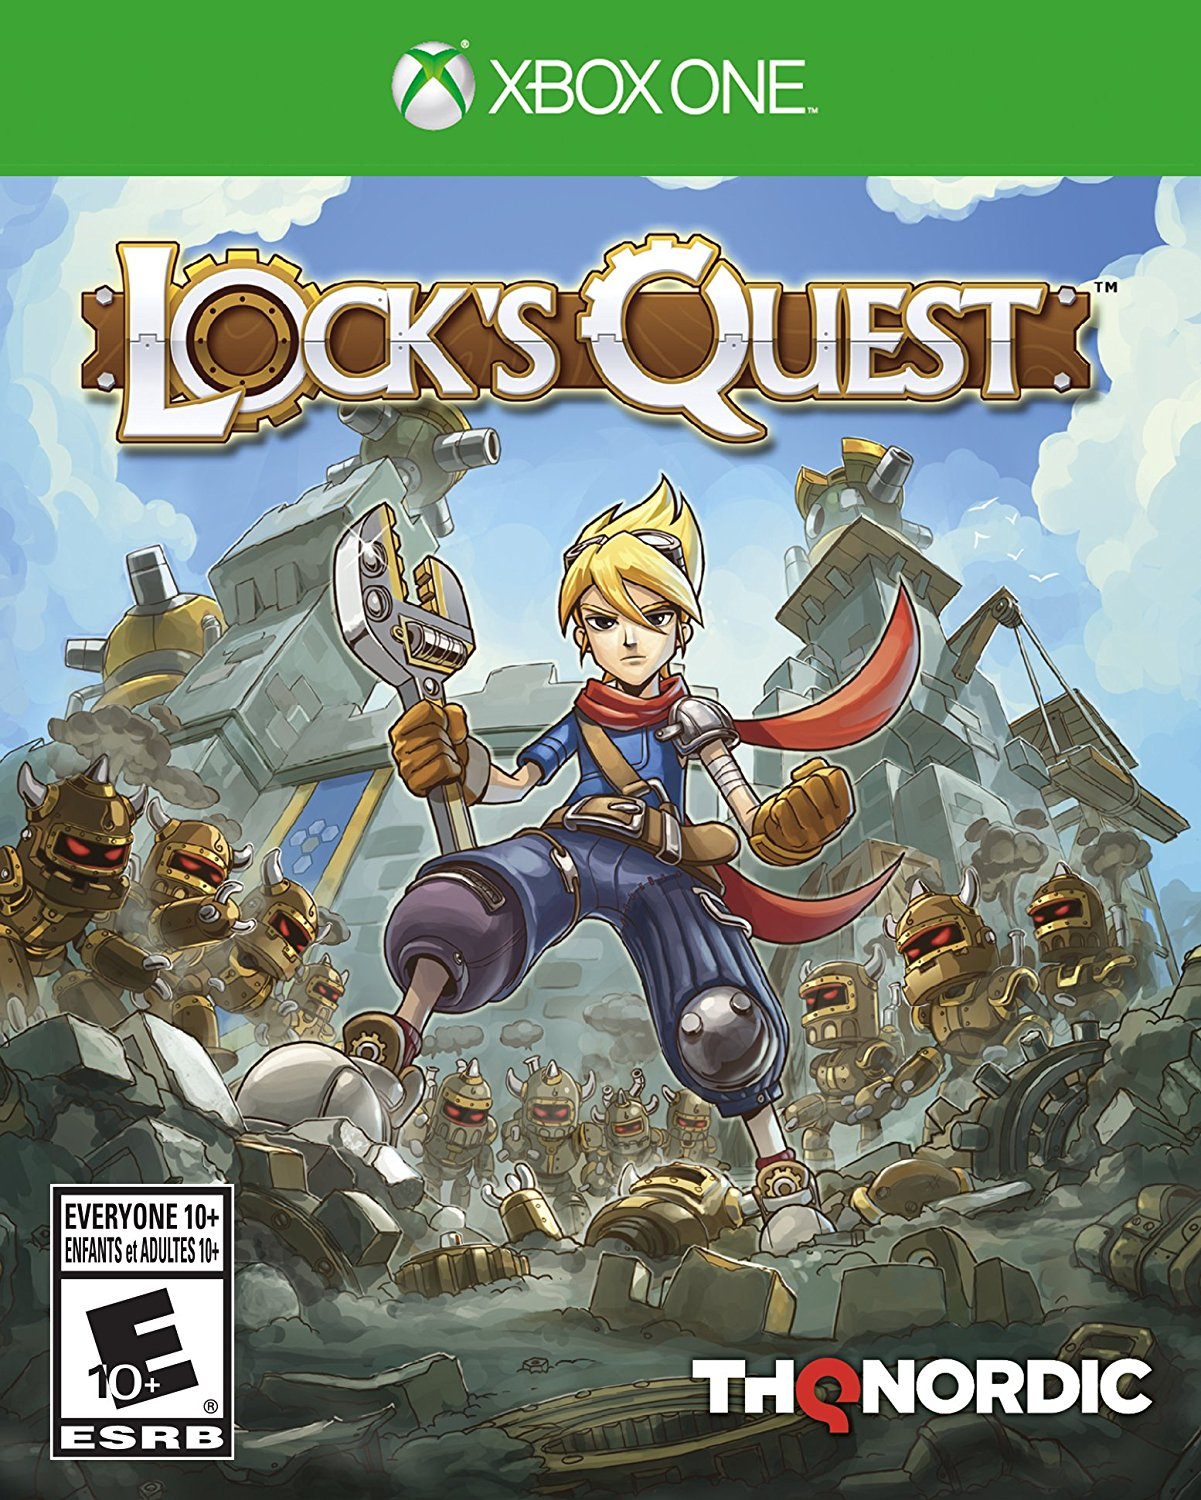 Lock's Quest - Xbox One - $12.65 - $7.34 off or 37%